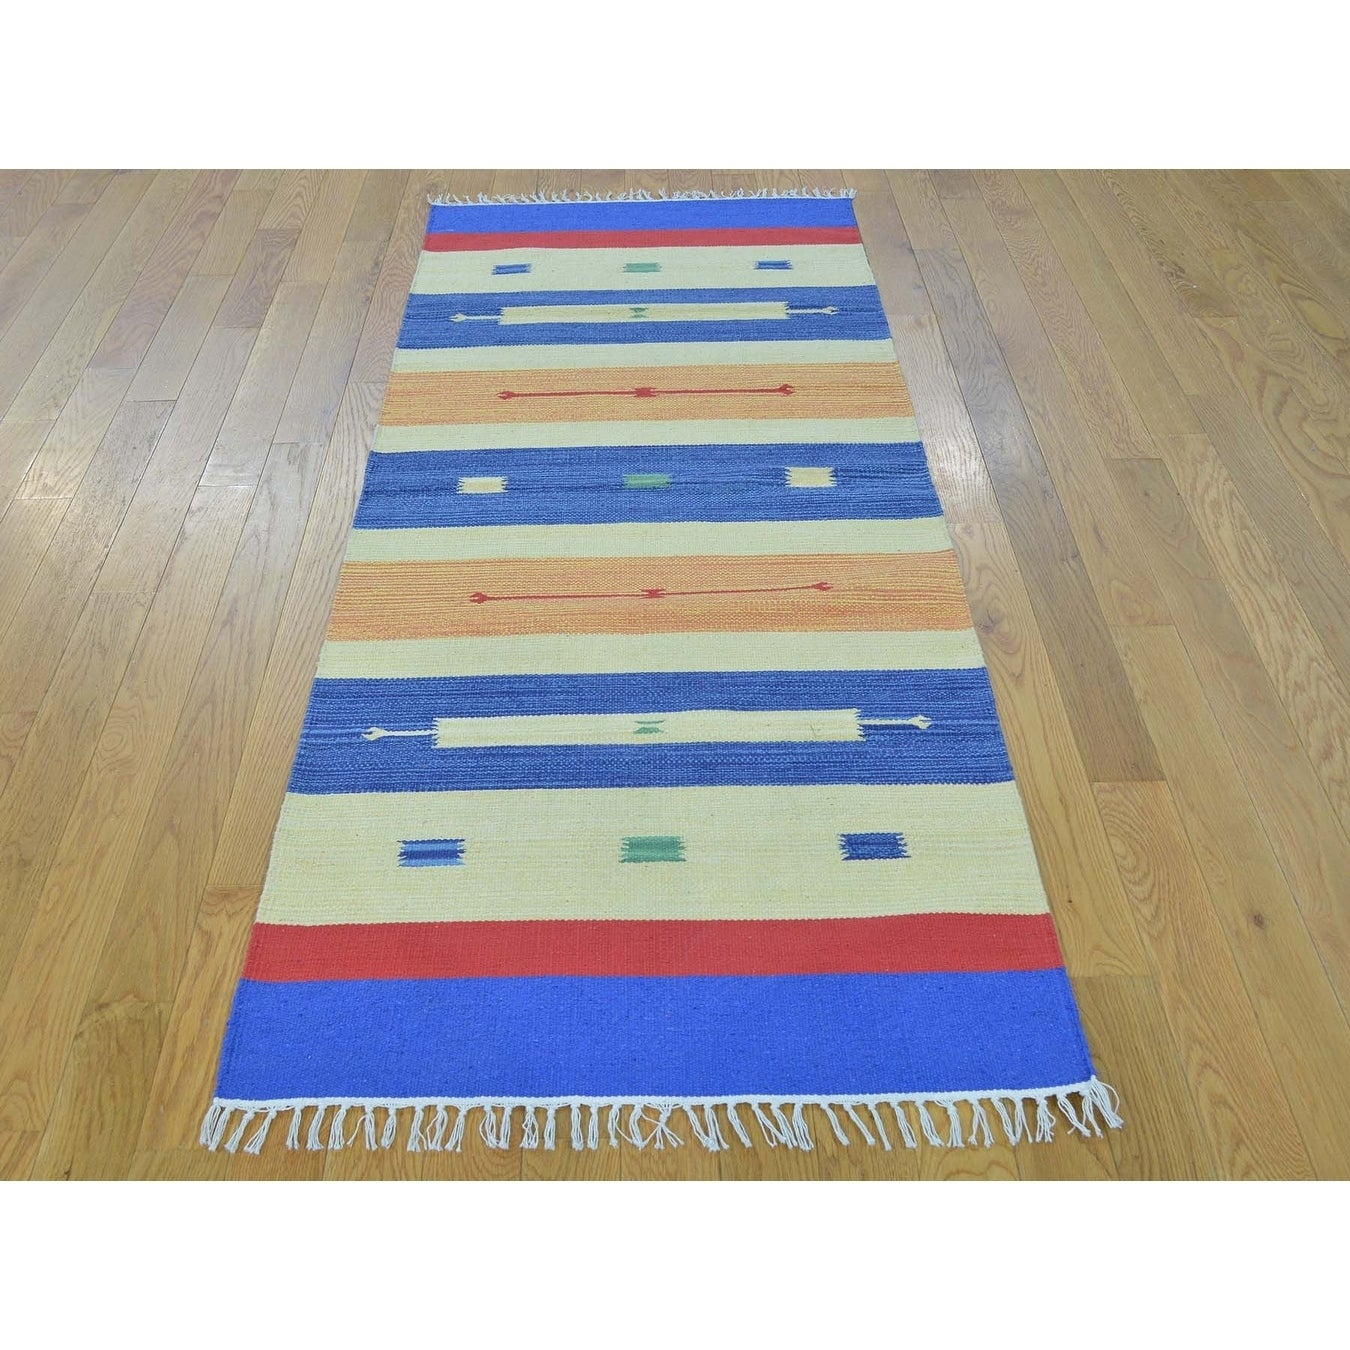 Hand Knotted Multicolored Flat Weave with Cotton Oriental Rug - 26 x 63